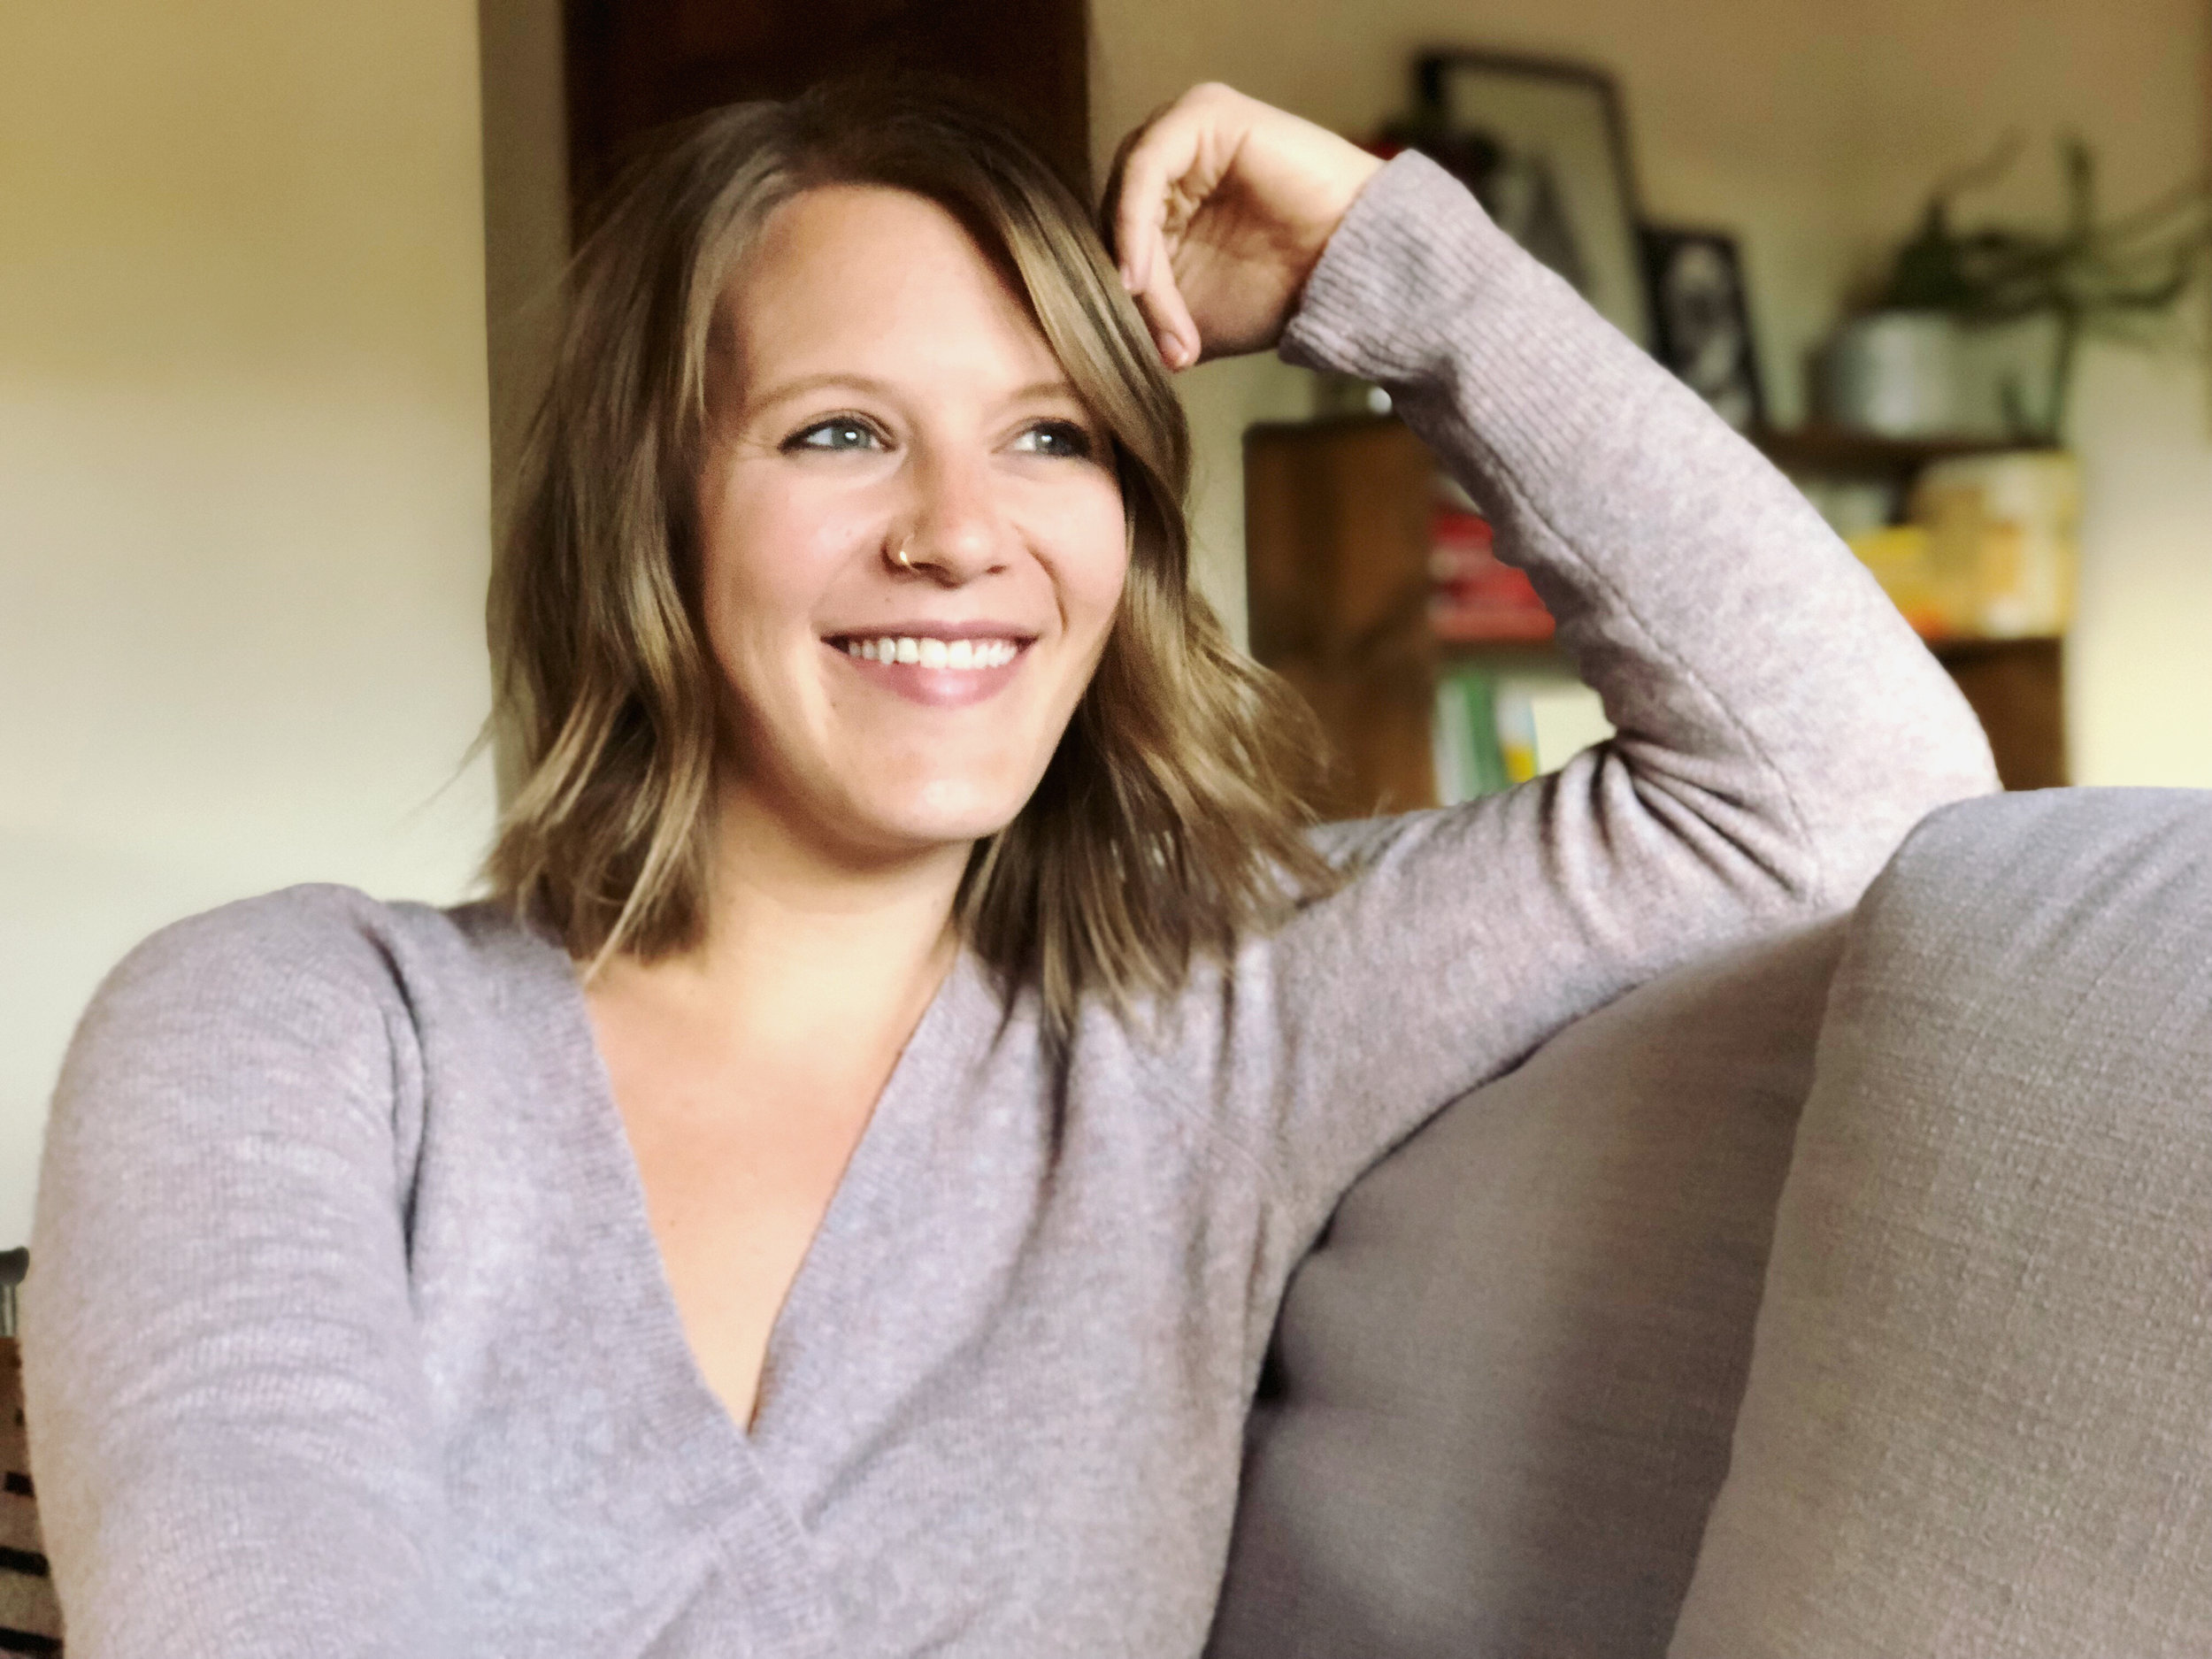 Kelsey Ullrich, LMHC, CYT, and Holistic Coach - Why work with me? I get it. There are a lot of self-proclaimed experts on love and sex out there. What makes me different? First of all, I teach and coach not only from a place of professional experience but also personal. I too, once struggled with toxic relationships and behaviors around love and sex. Relationships that were abusive, neglectful, and even addictive. At one point I even believed it would be impossible to ever have a healthy, loving relationship. Through my own journey and healing I discovered the root cause to my own dysfunction in love and sex. Today, I am in a loving partnership and finally feel worthy of healthy, stable love. It hasn't been an easy journey. But worth the work. This began with learning how to truly love myself. For the women who struggle with love and sex, I want you to experience this sense of liberation too. I want you to know you're not alone and it's okay to struggle in this life area. Most of all, I want you to know that healing is possible.You can learn more about my story here.